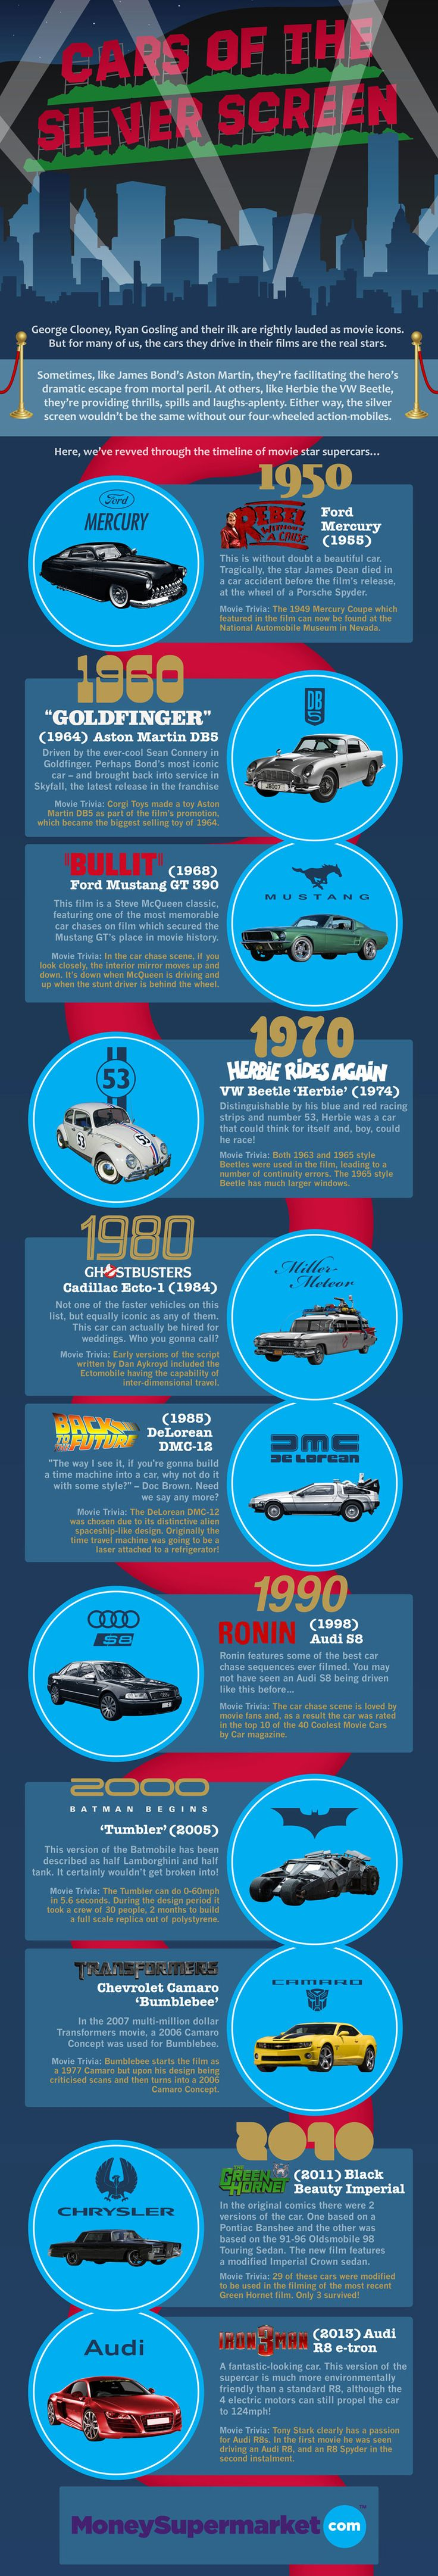 It is not always the ultra-cool cars that steal the limelight in blockbuster movies. Quite often the most memorable cars are the most unlikely. Take, for instance the Cadillac 'Ecto-1' that the Ghostbusters used to get around the busy New York streets, or the Volkswagen Beetle that got into so many scrapes in the Herbie movies. To celebrate these unlikely heroes, we've taken a look at the timeline of great cars of the silver screen.